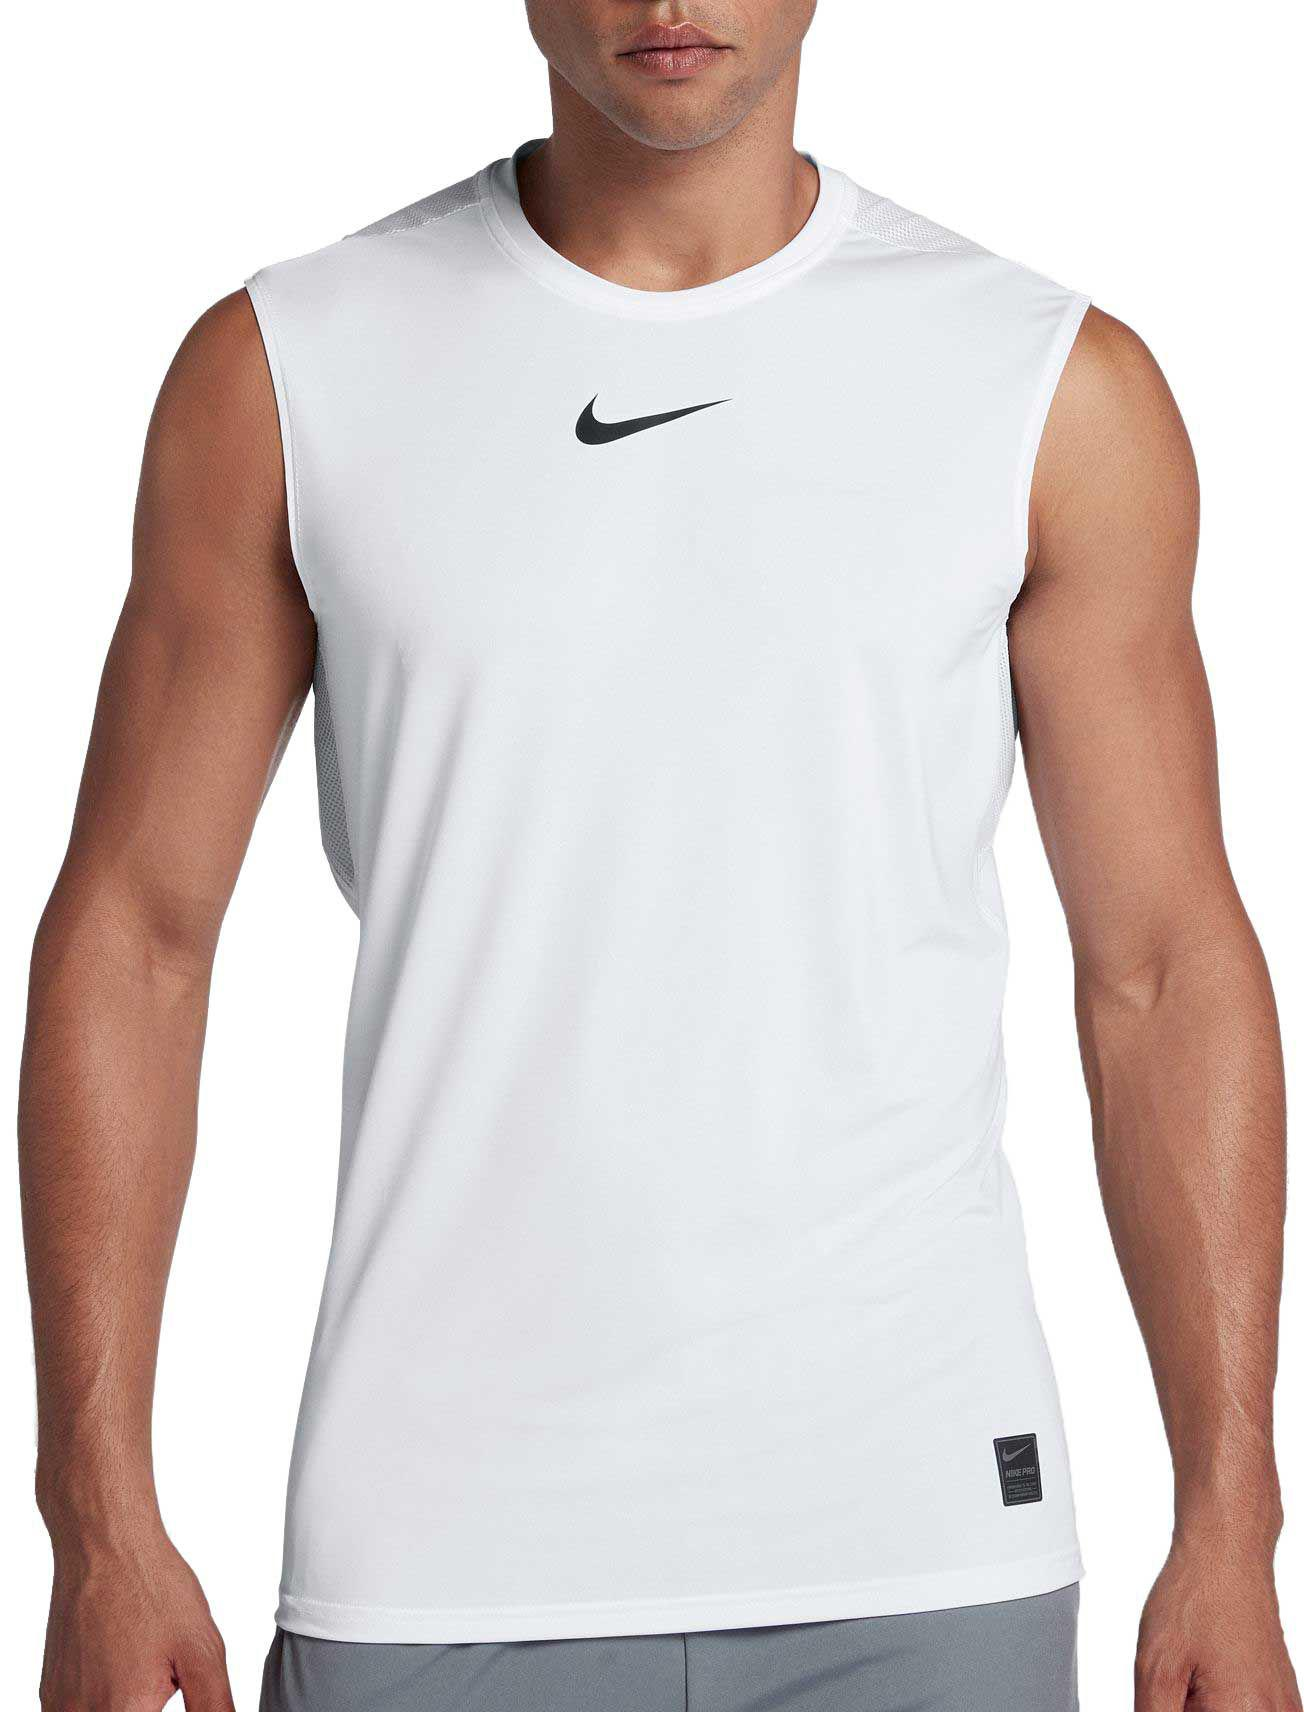 a049b1082 Nike Pro Sleeveless Training Top in White for Men - Save 46% - Lyst